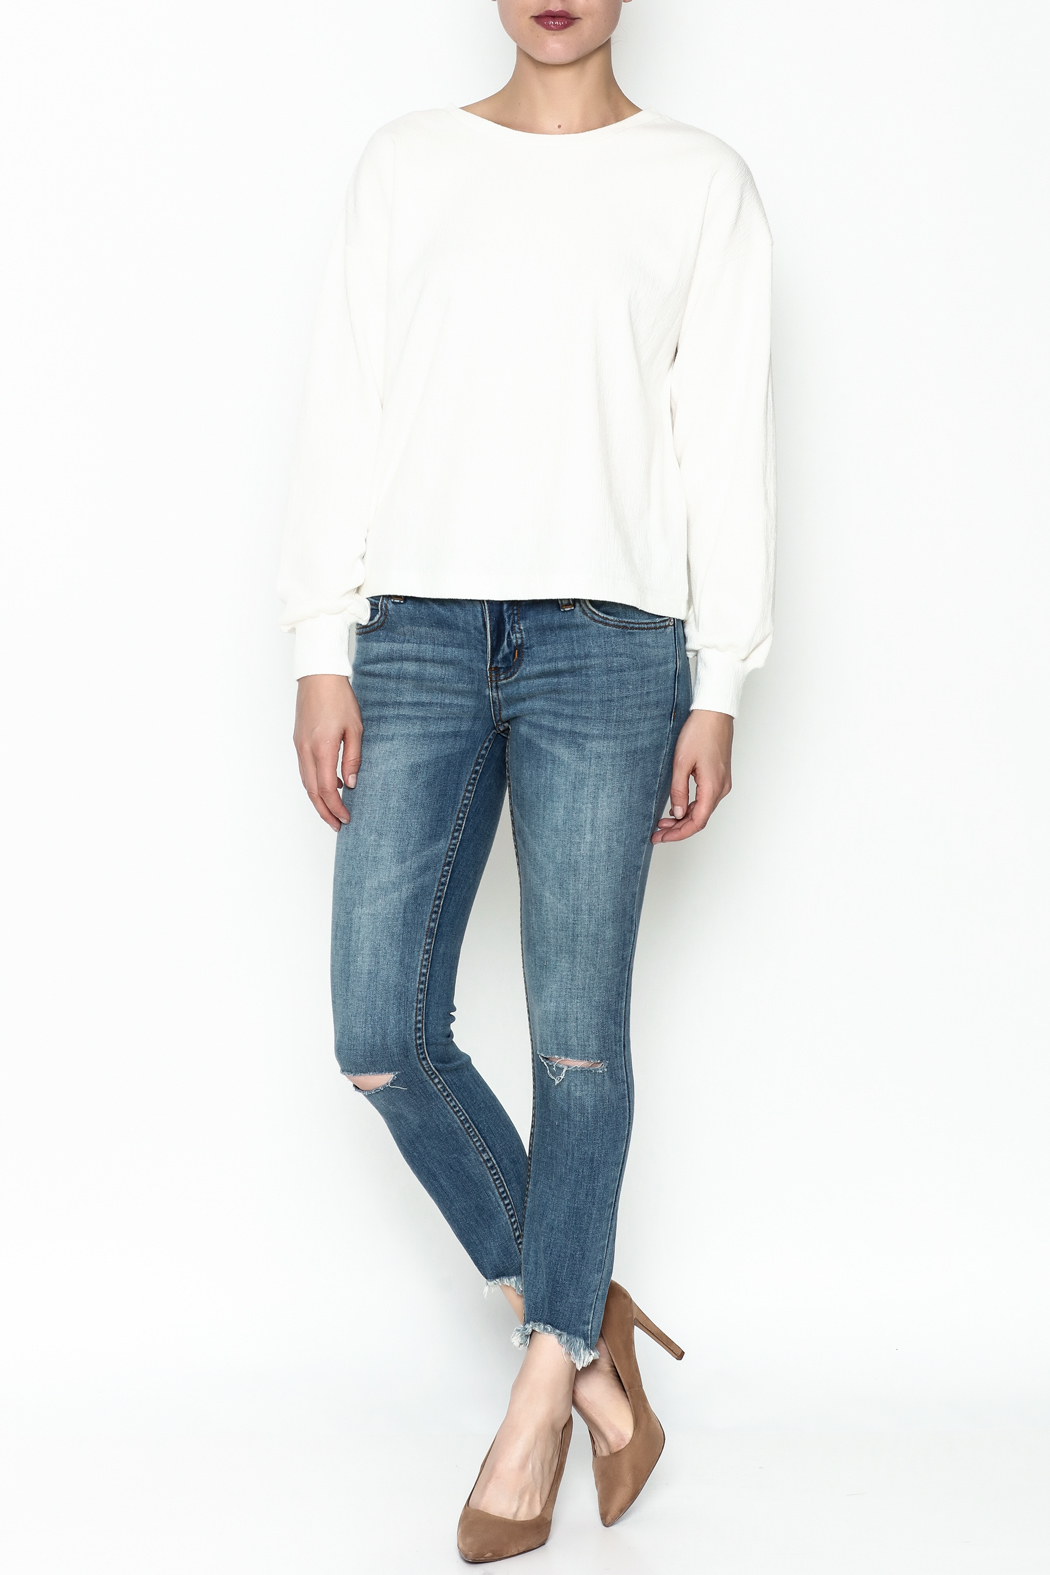 WREN & WILLA Light Crew Neck Pullover - Side Cropped Image